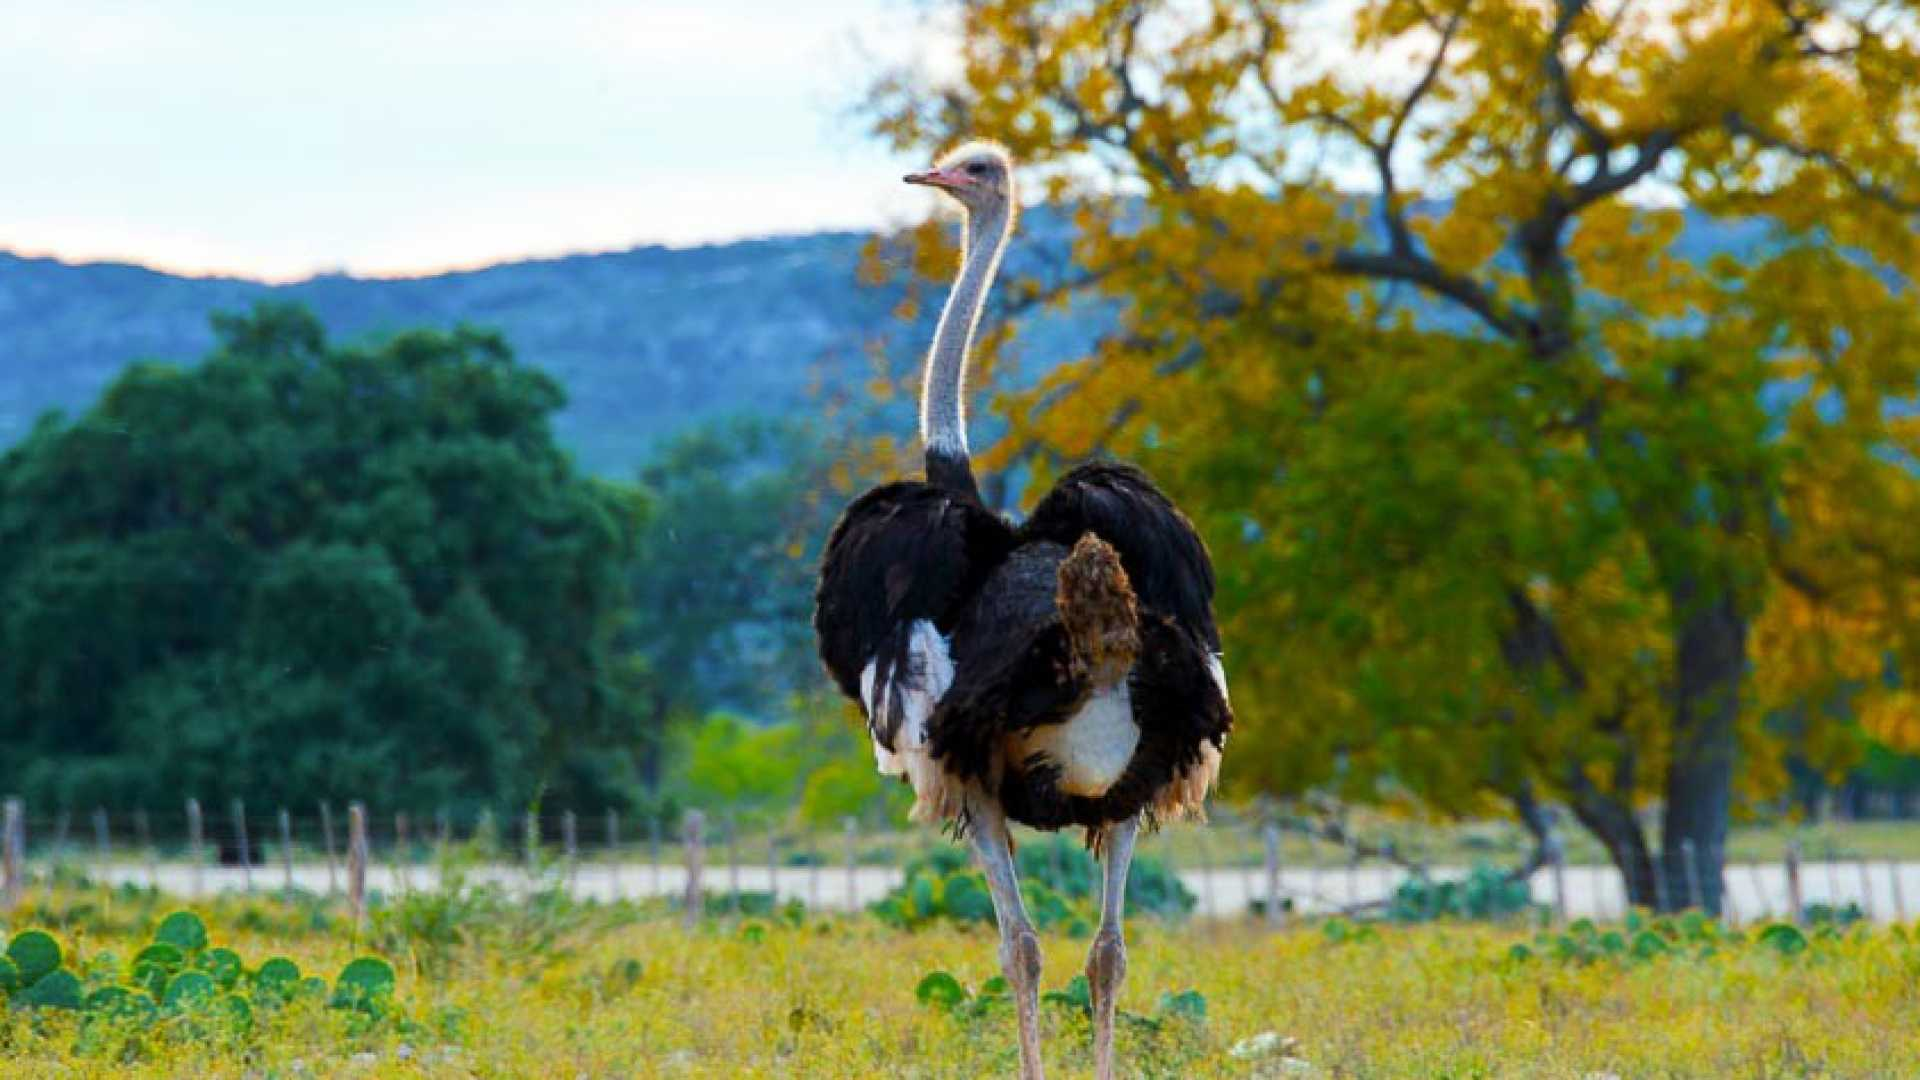 Ostrich are one of the many exotic animals that can be hunted on Ox Ranch. The animals are free ranging on the 18,000-acre property.